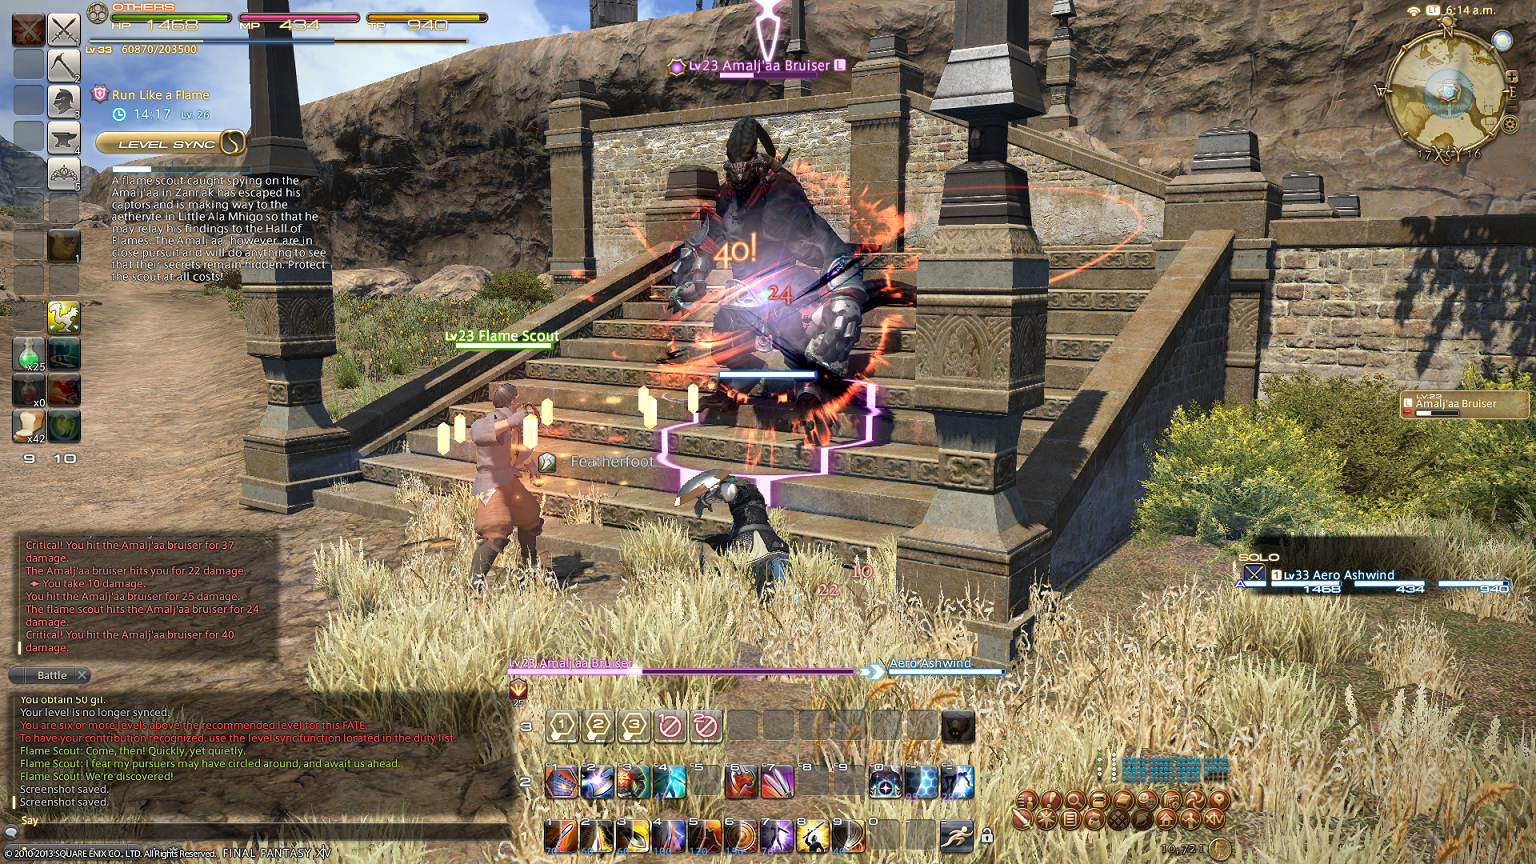 seiji okita ffxiv make petbar command toggle your visibility pictures remember anyone post know